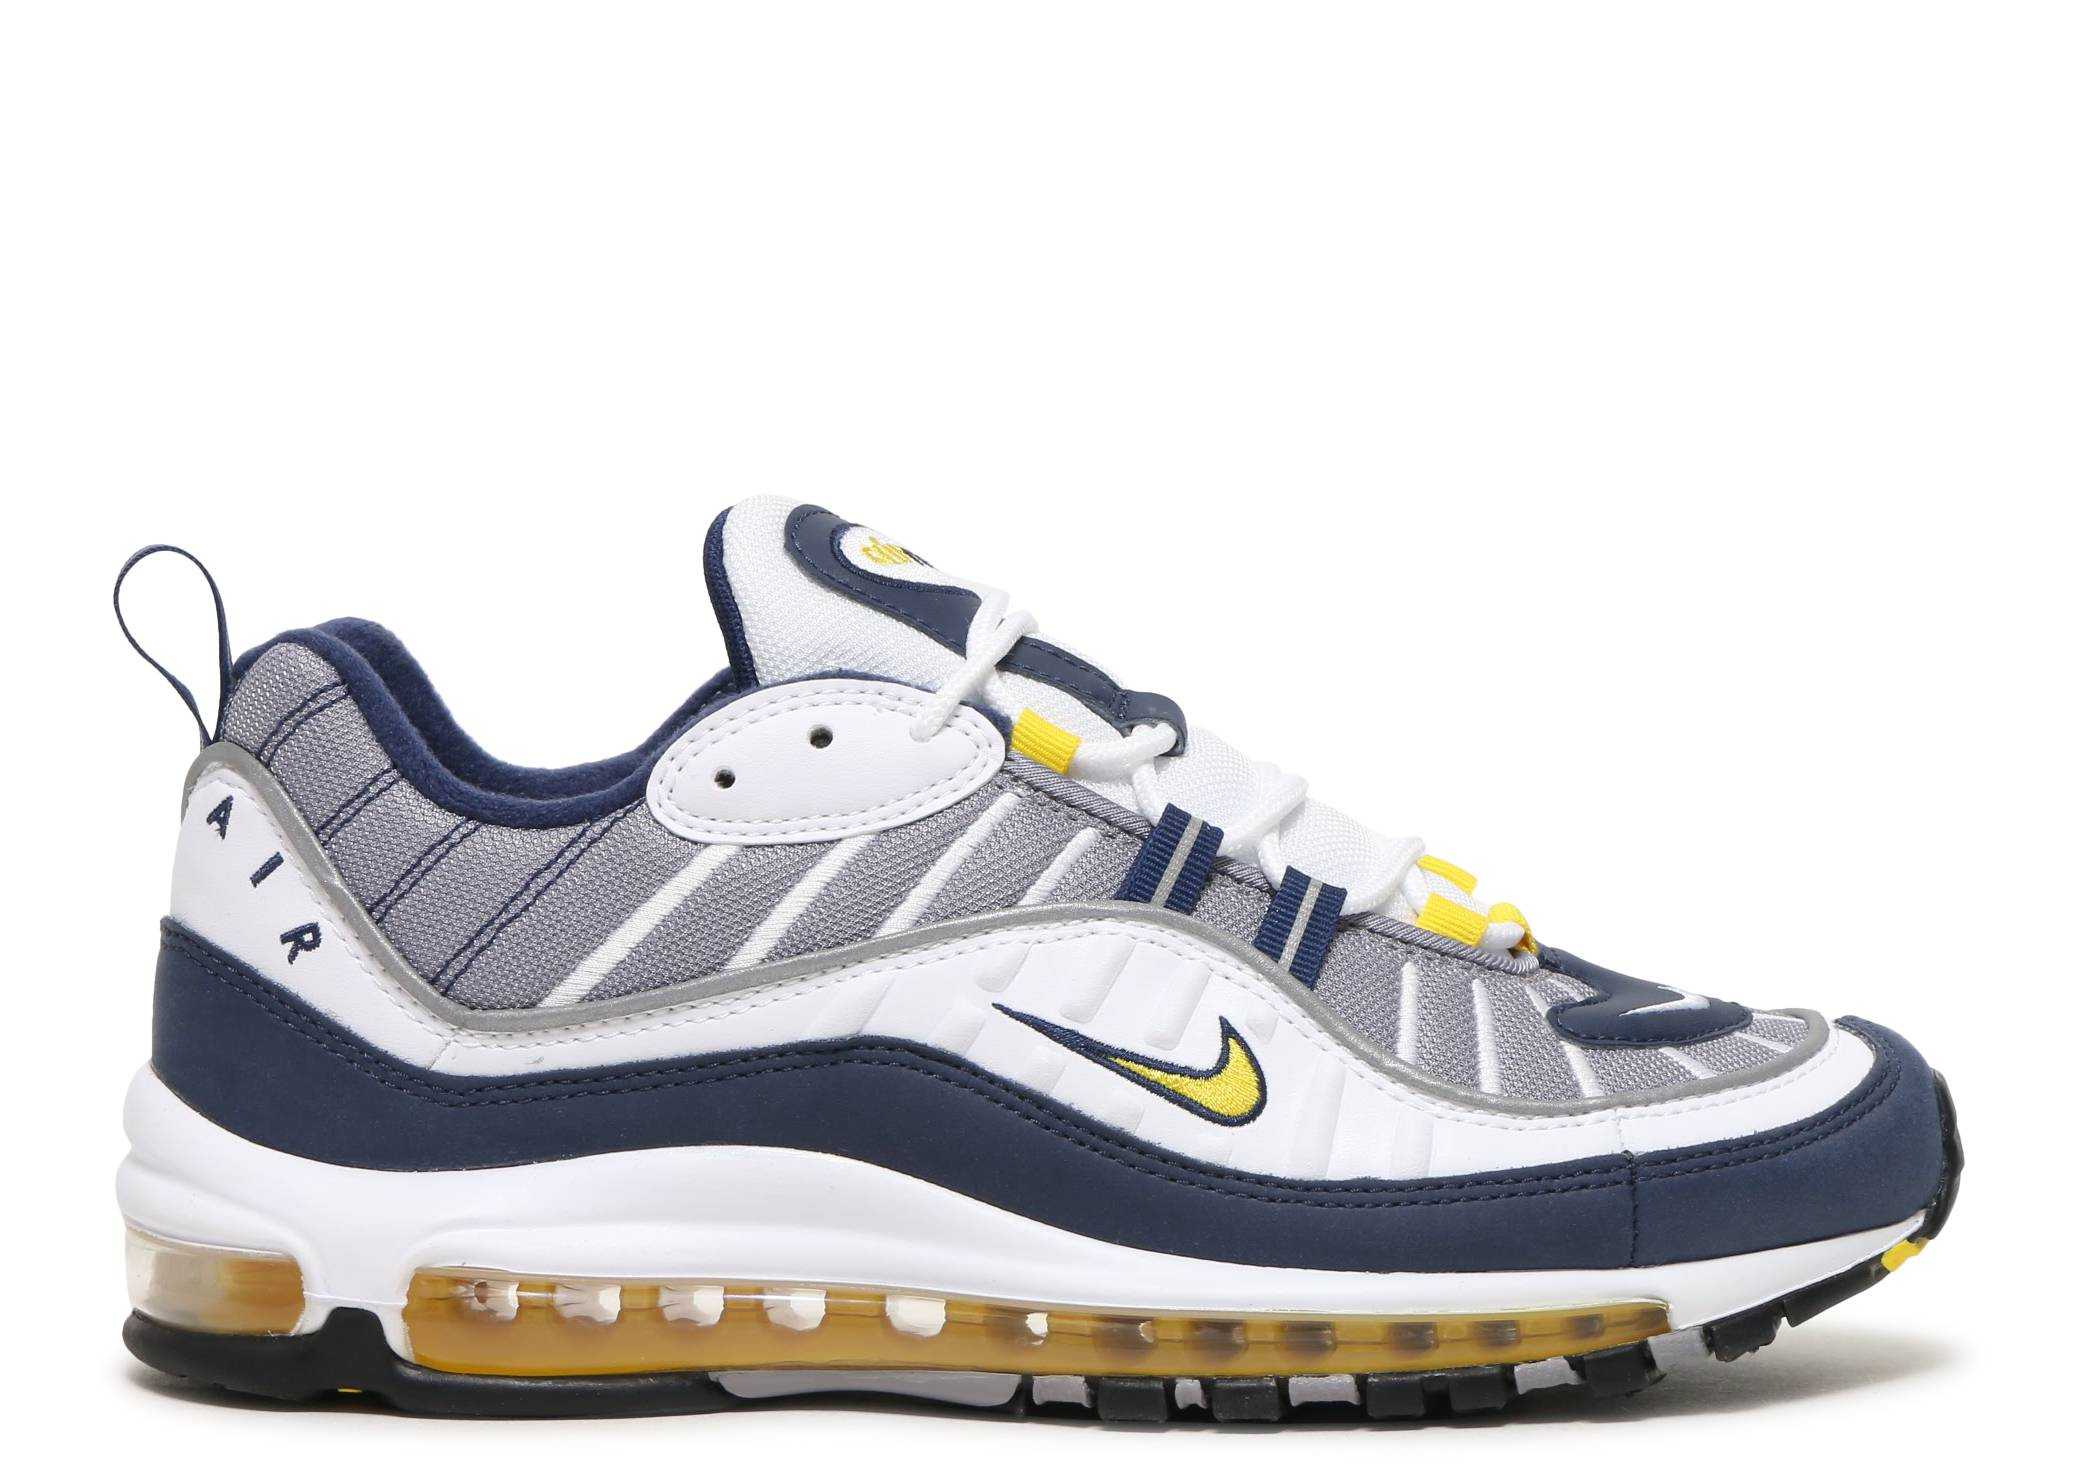 a6bde0f69a0c42 AIr Max 98 - Nike - 640744 105 - white tour yellow-midnight navy ...